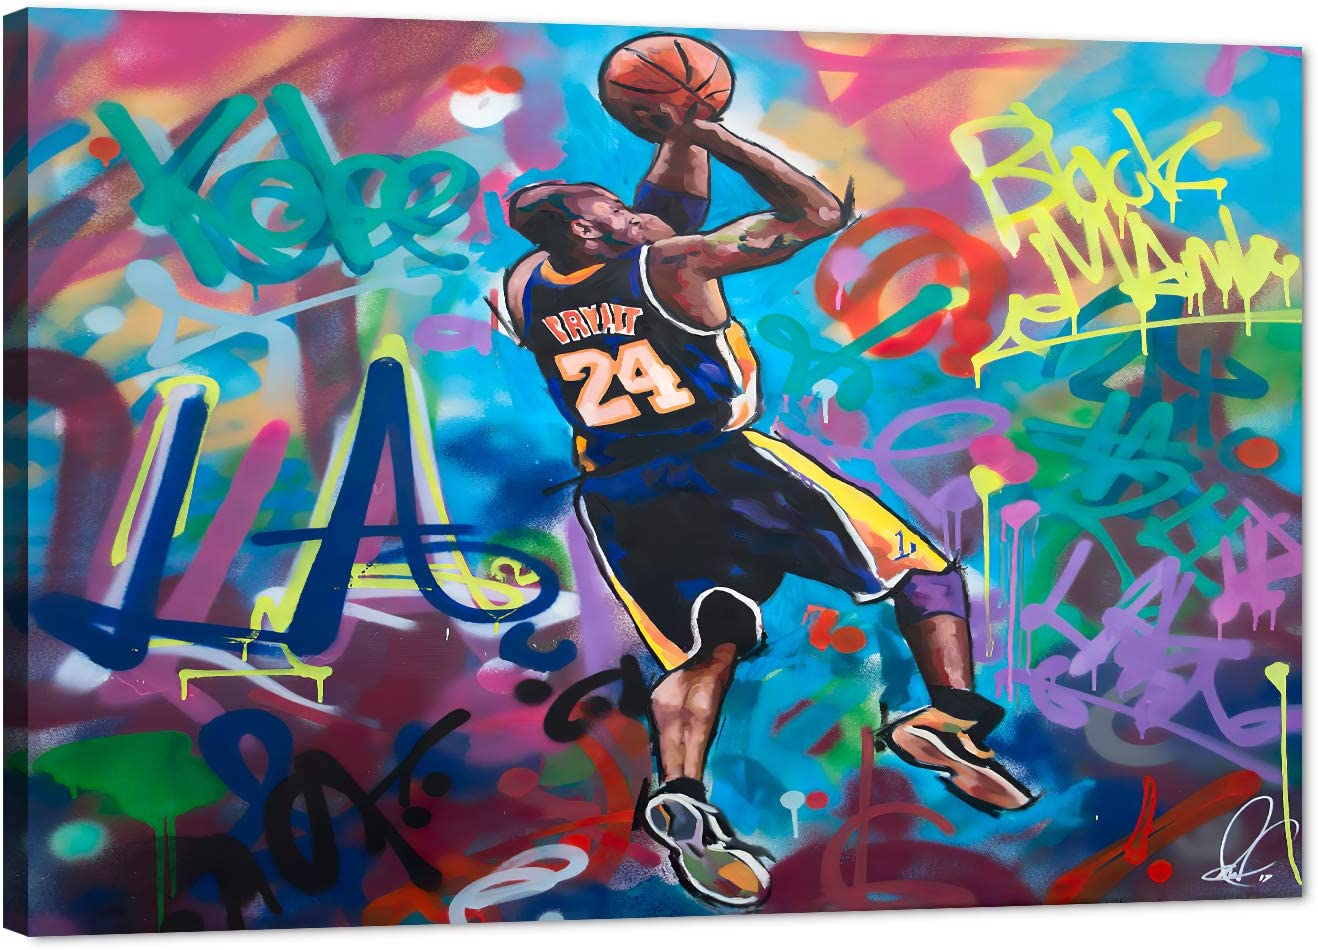 Kobe Street Graffiti Canvas Wall Art, LA Lakers Forever Legend #24 Basketball Star Framed Poster for Home Wall Decor, Colorful Black Mamba Painting for Men Boys Bedroom Office Decor(12x18 Inches)